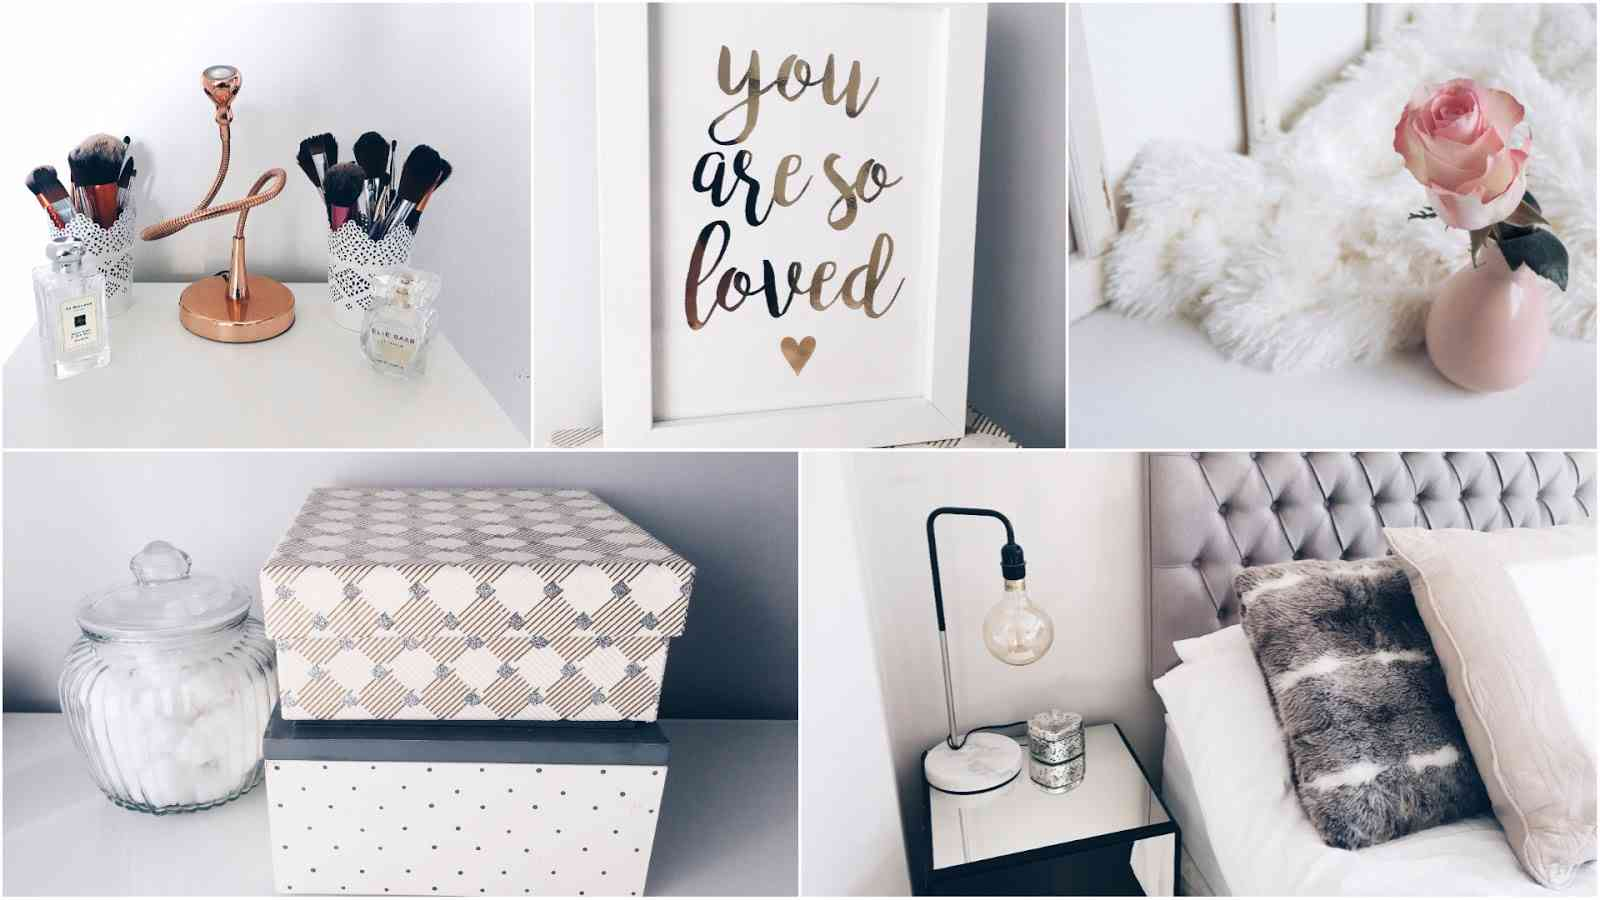 rose gold accessories and items for the home